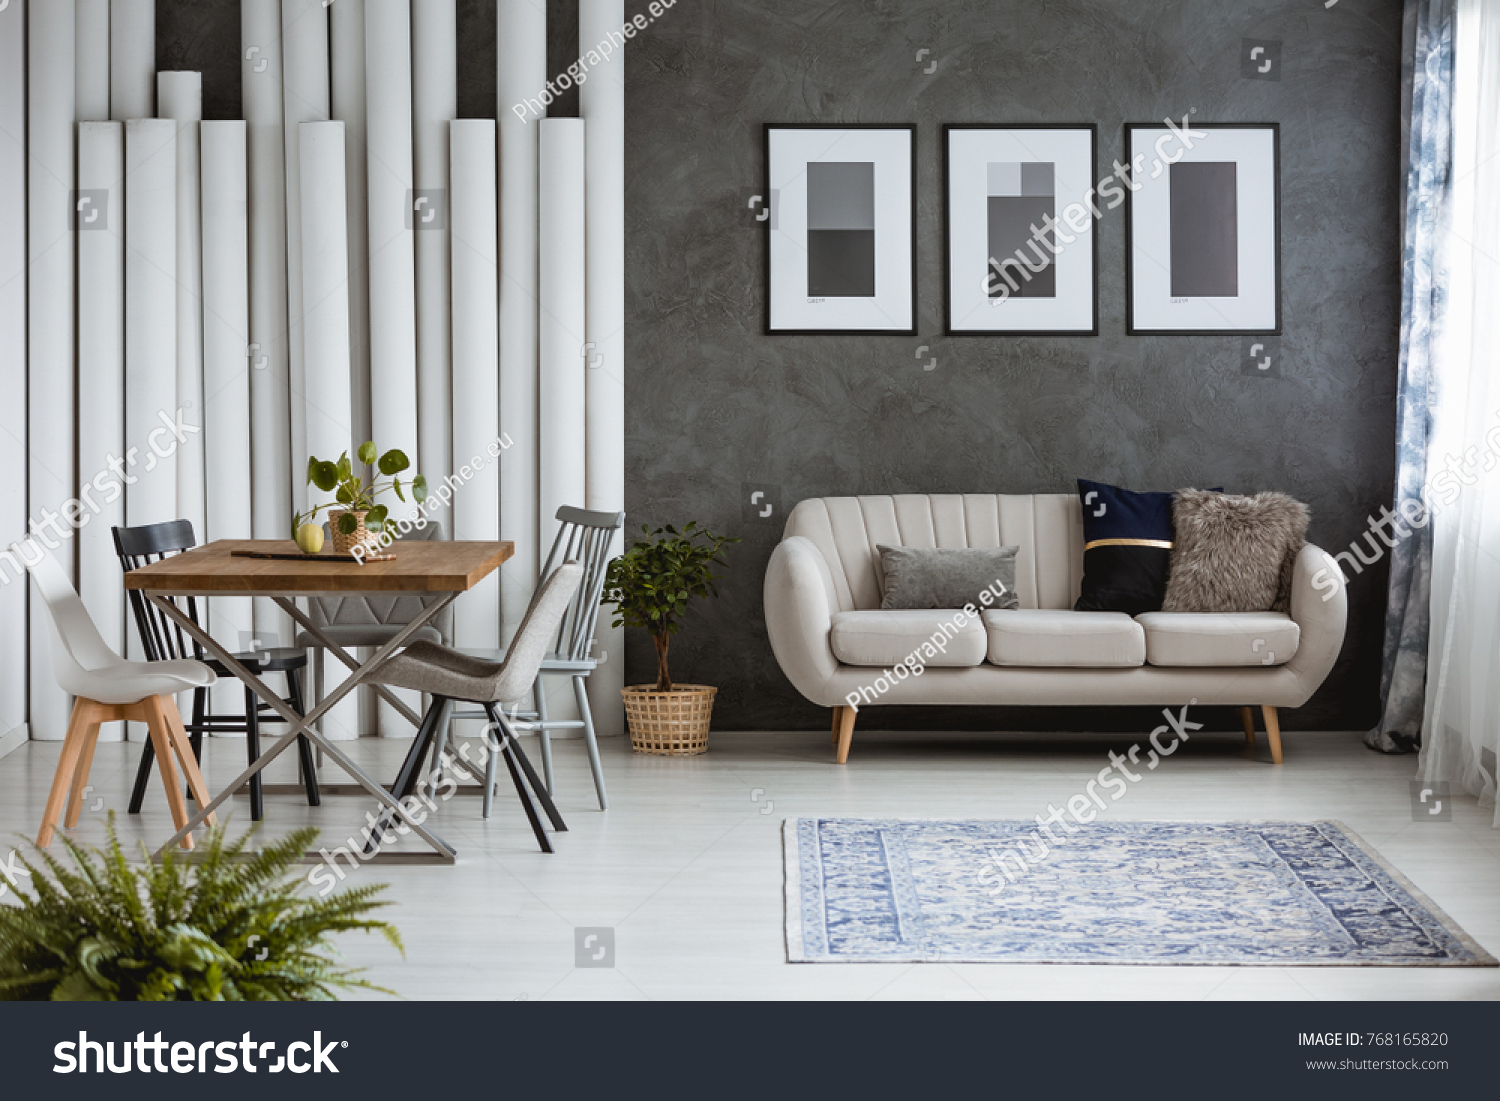 Multifunctional Monochromatic Living Room With Carpet, Dining Table And  Sofa Against Dark Wall With Posters